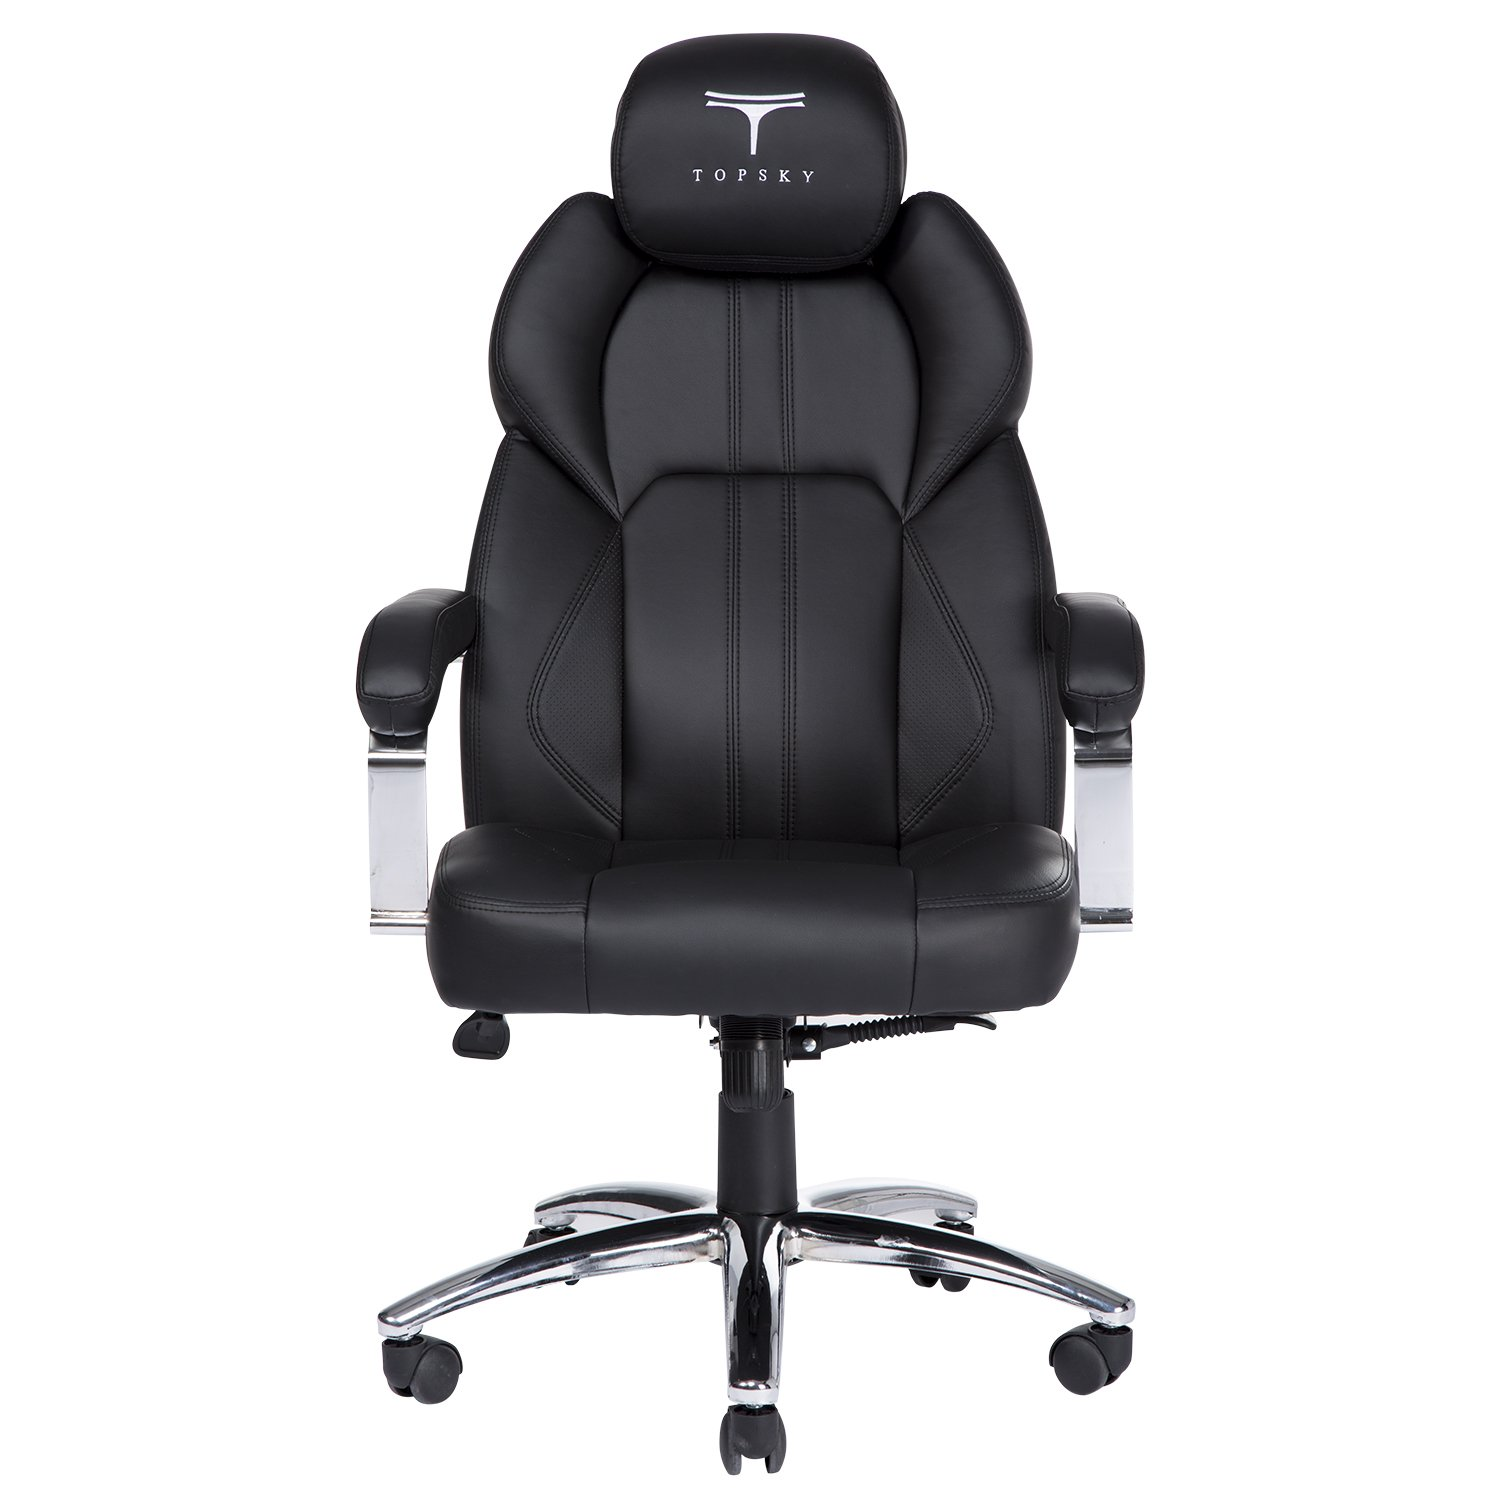 topsky executive office chair large pu leather chair with